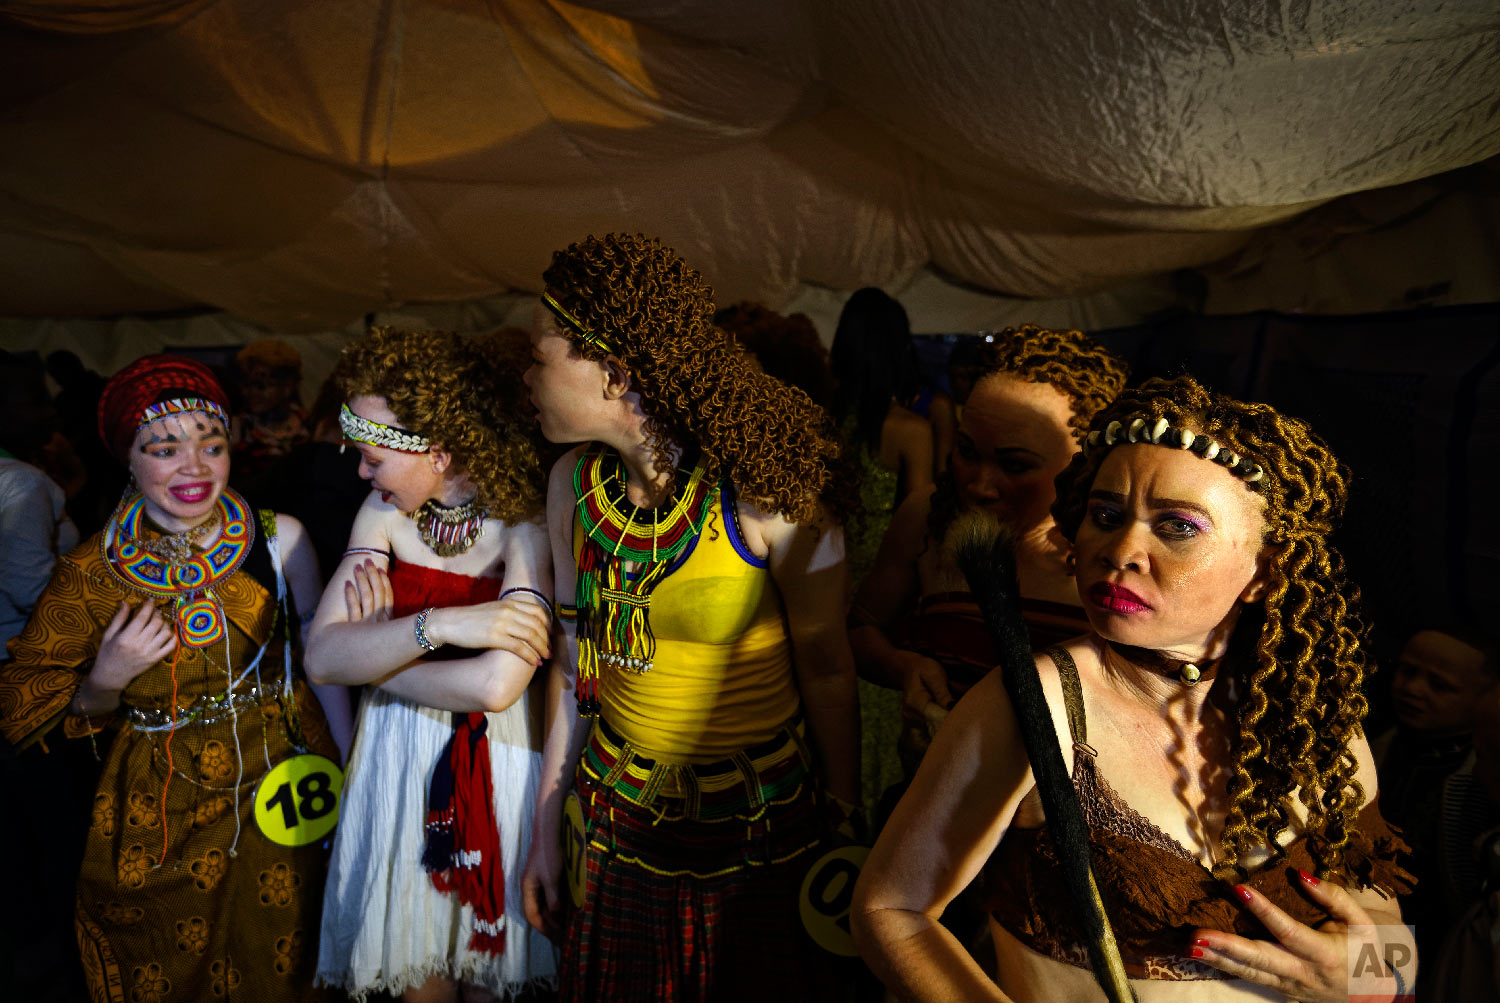 Contestants queue up to take the stage in the Mr. & Miss Albinism East Africa contest, organized by the Albinism Society of Kenya, in Nairobi, Kenya, Nov. 30, 2018. (AP Photo/Ben Curtis)